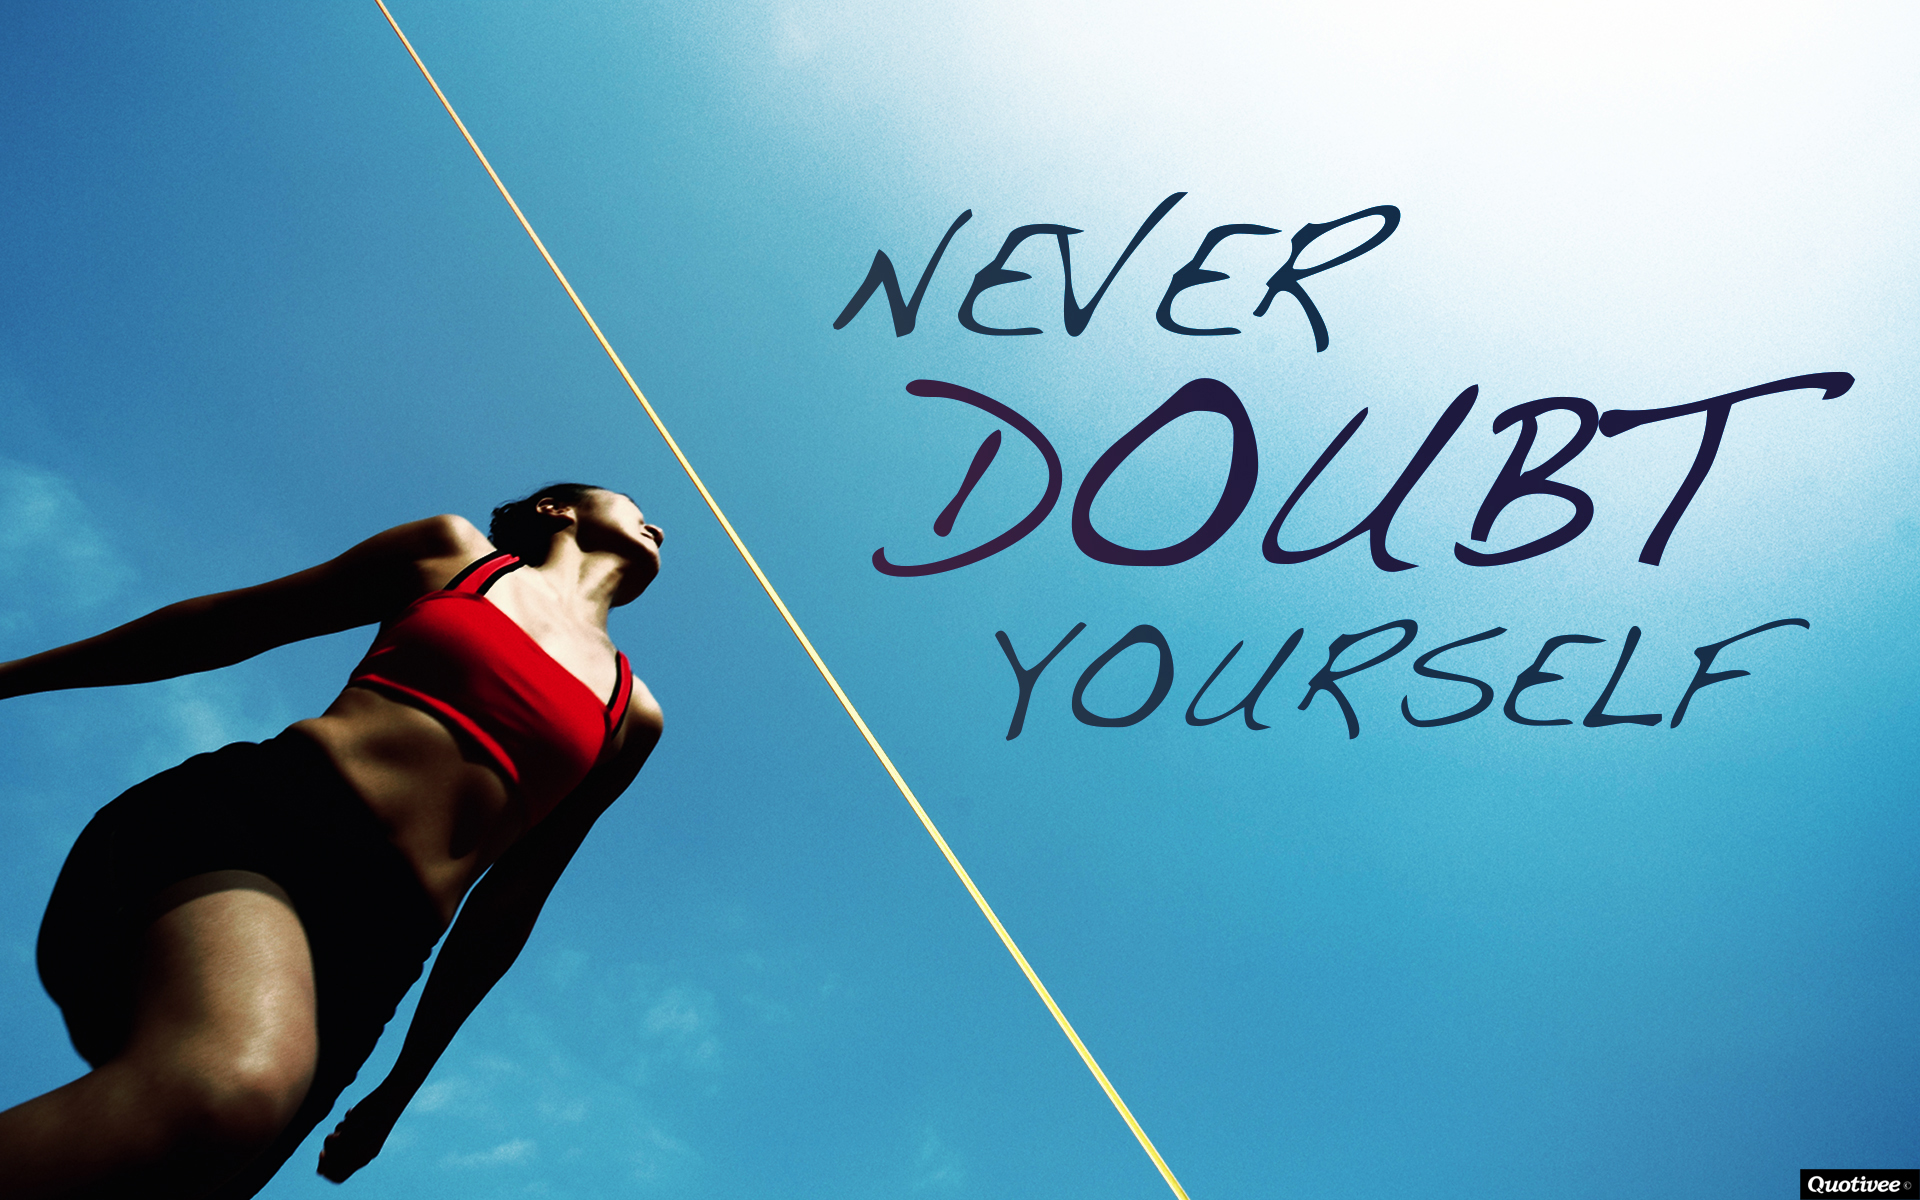 Wallpaper Fitness Quotes Never Doubt Yourself Inspirational Quotes Quotivee